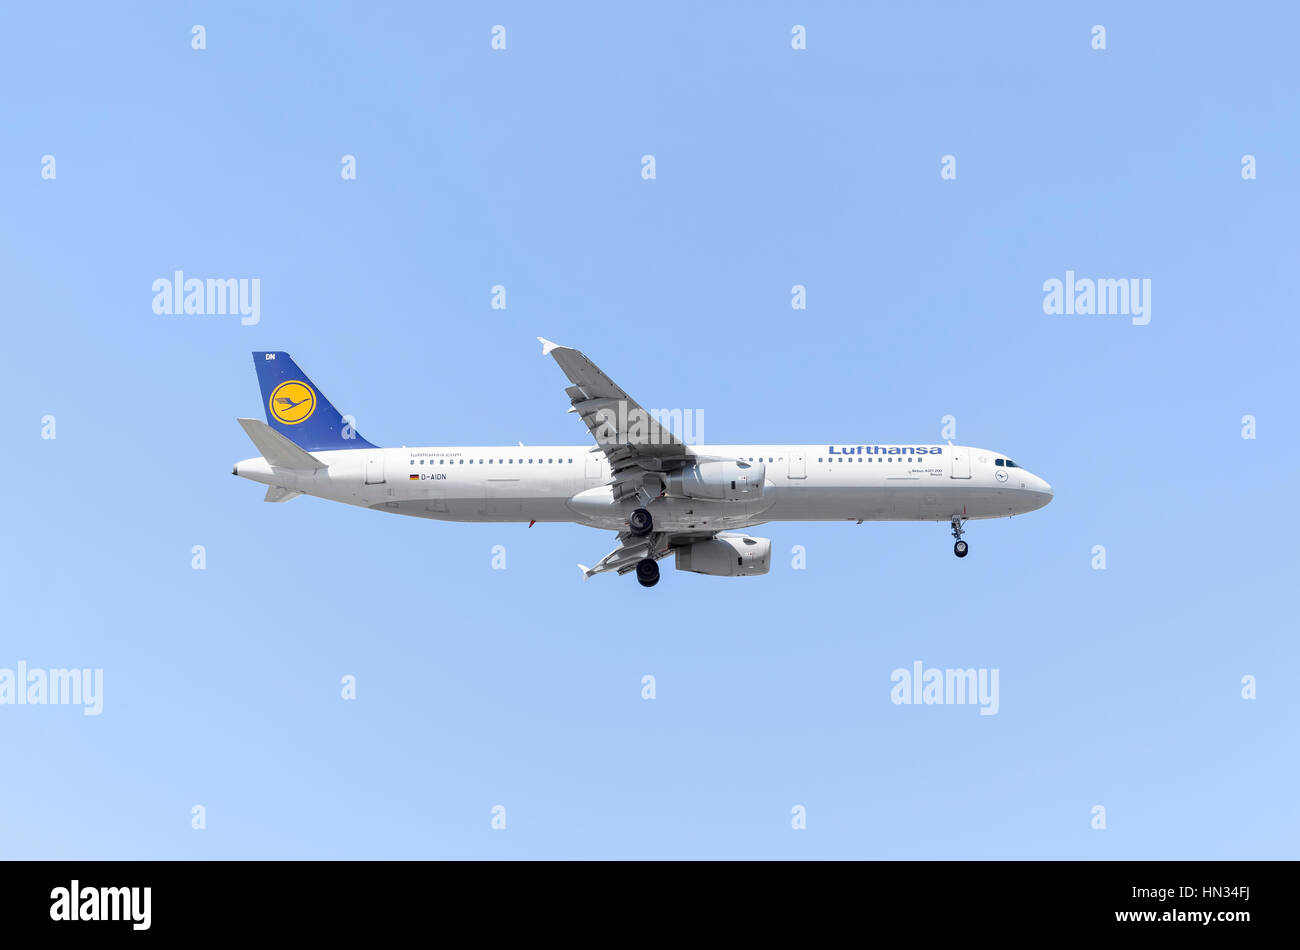 plane airbus a321 of lufthansa airline blue sky sunny day of rh alamy com Airbus A320 Airbus A330